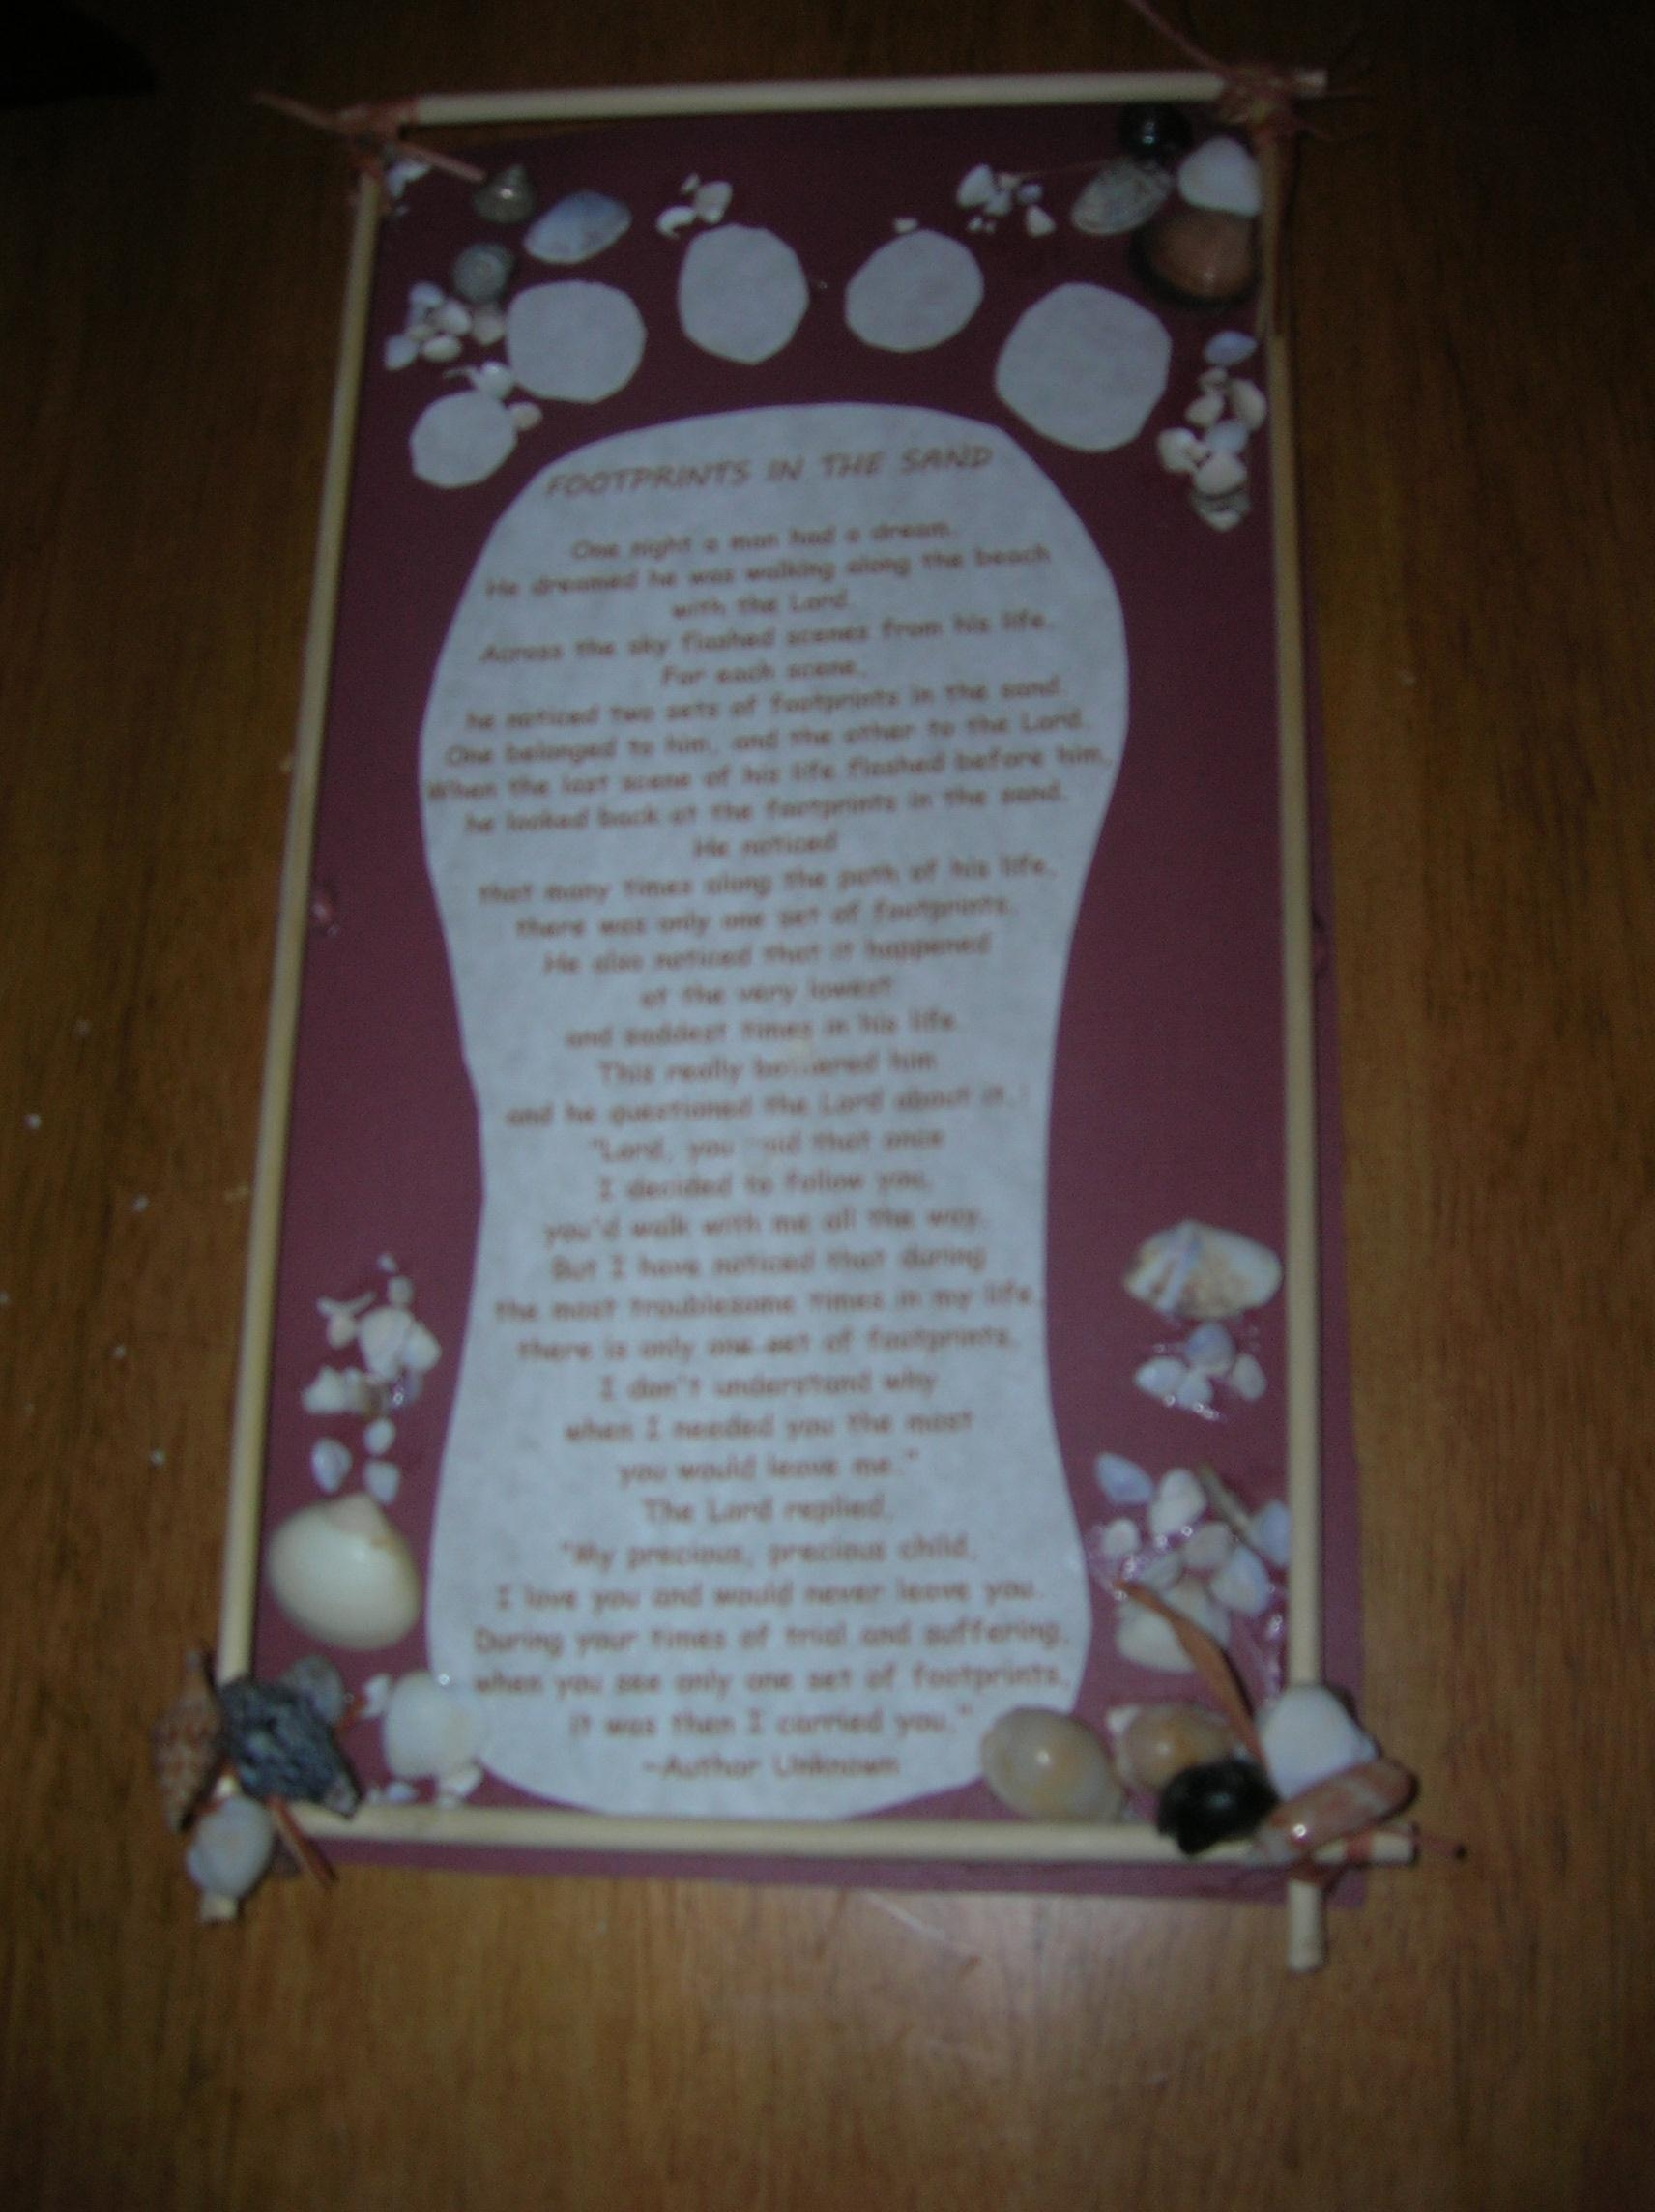 Footprints In The Sand Wall Hanging | Buggalcrafts In Footprints In The Sand Wall Art (Image 11 of 20)